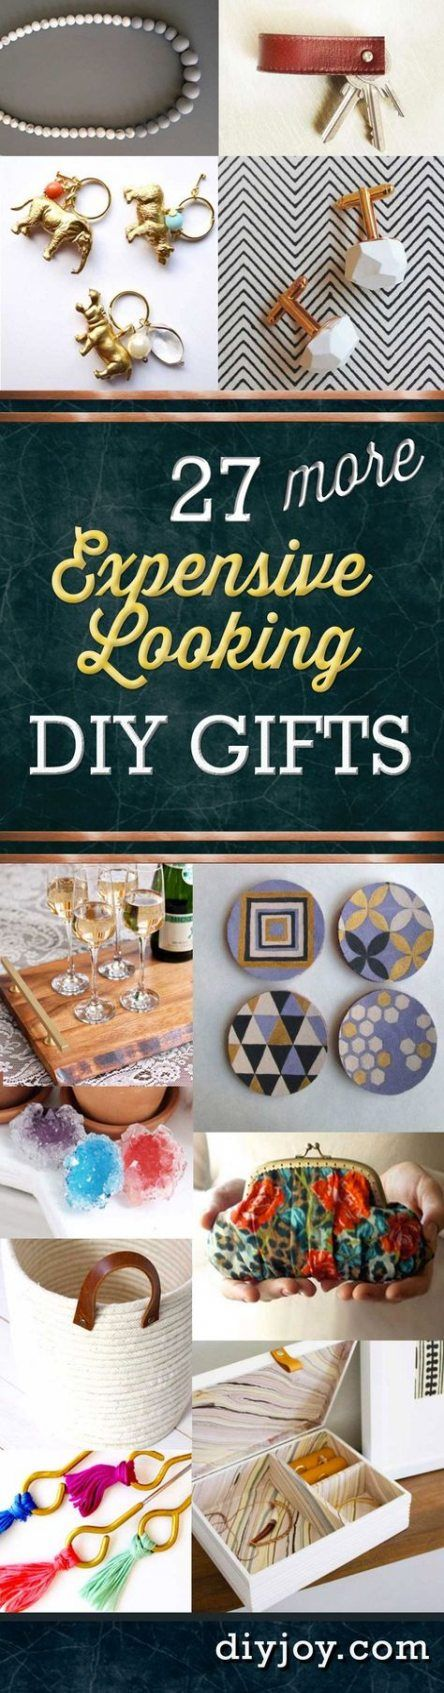 Best Gifts For Mom Who Has Everything Dads Ideas gifts